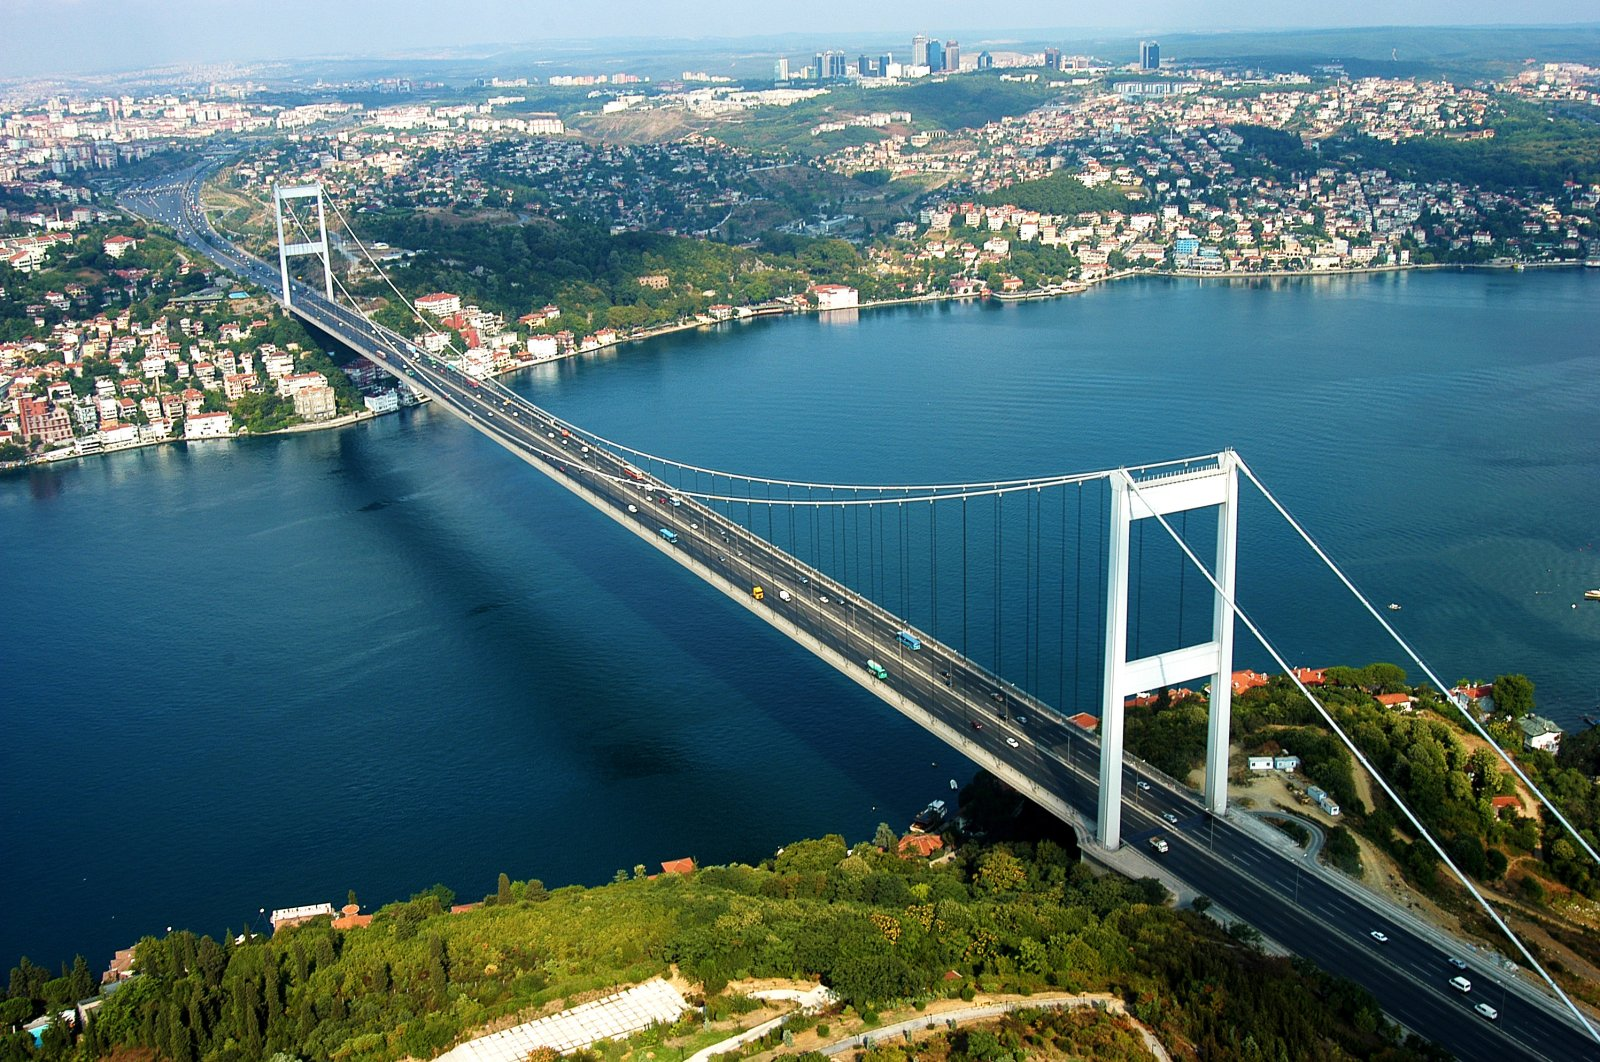 An aerial view of Bosphorus Bridge, recently named as the July 15 Martyrs Bridge, Istanbul. (iStock Photo)